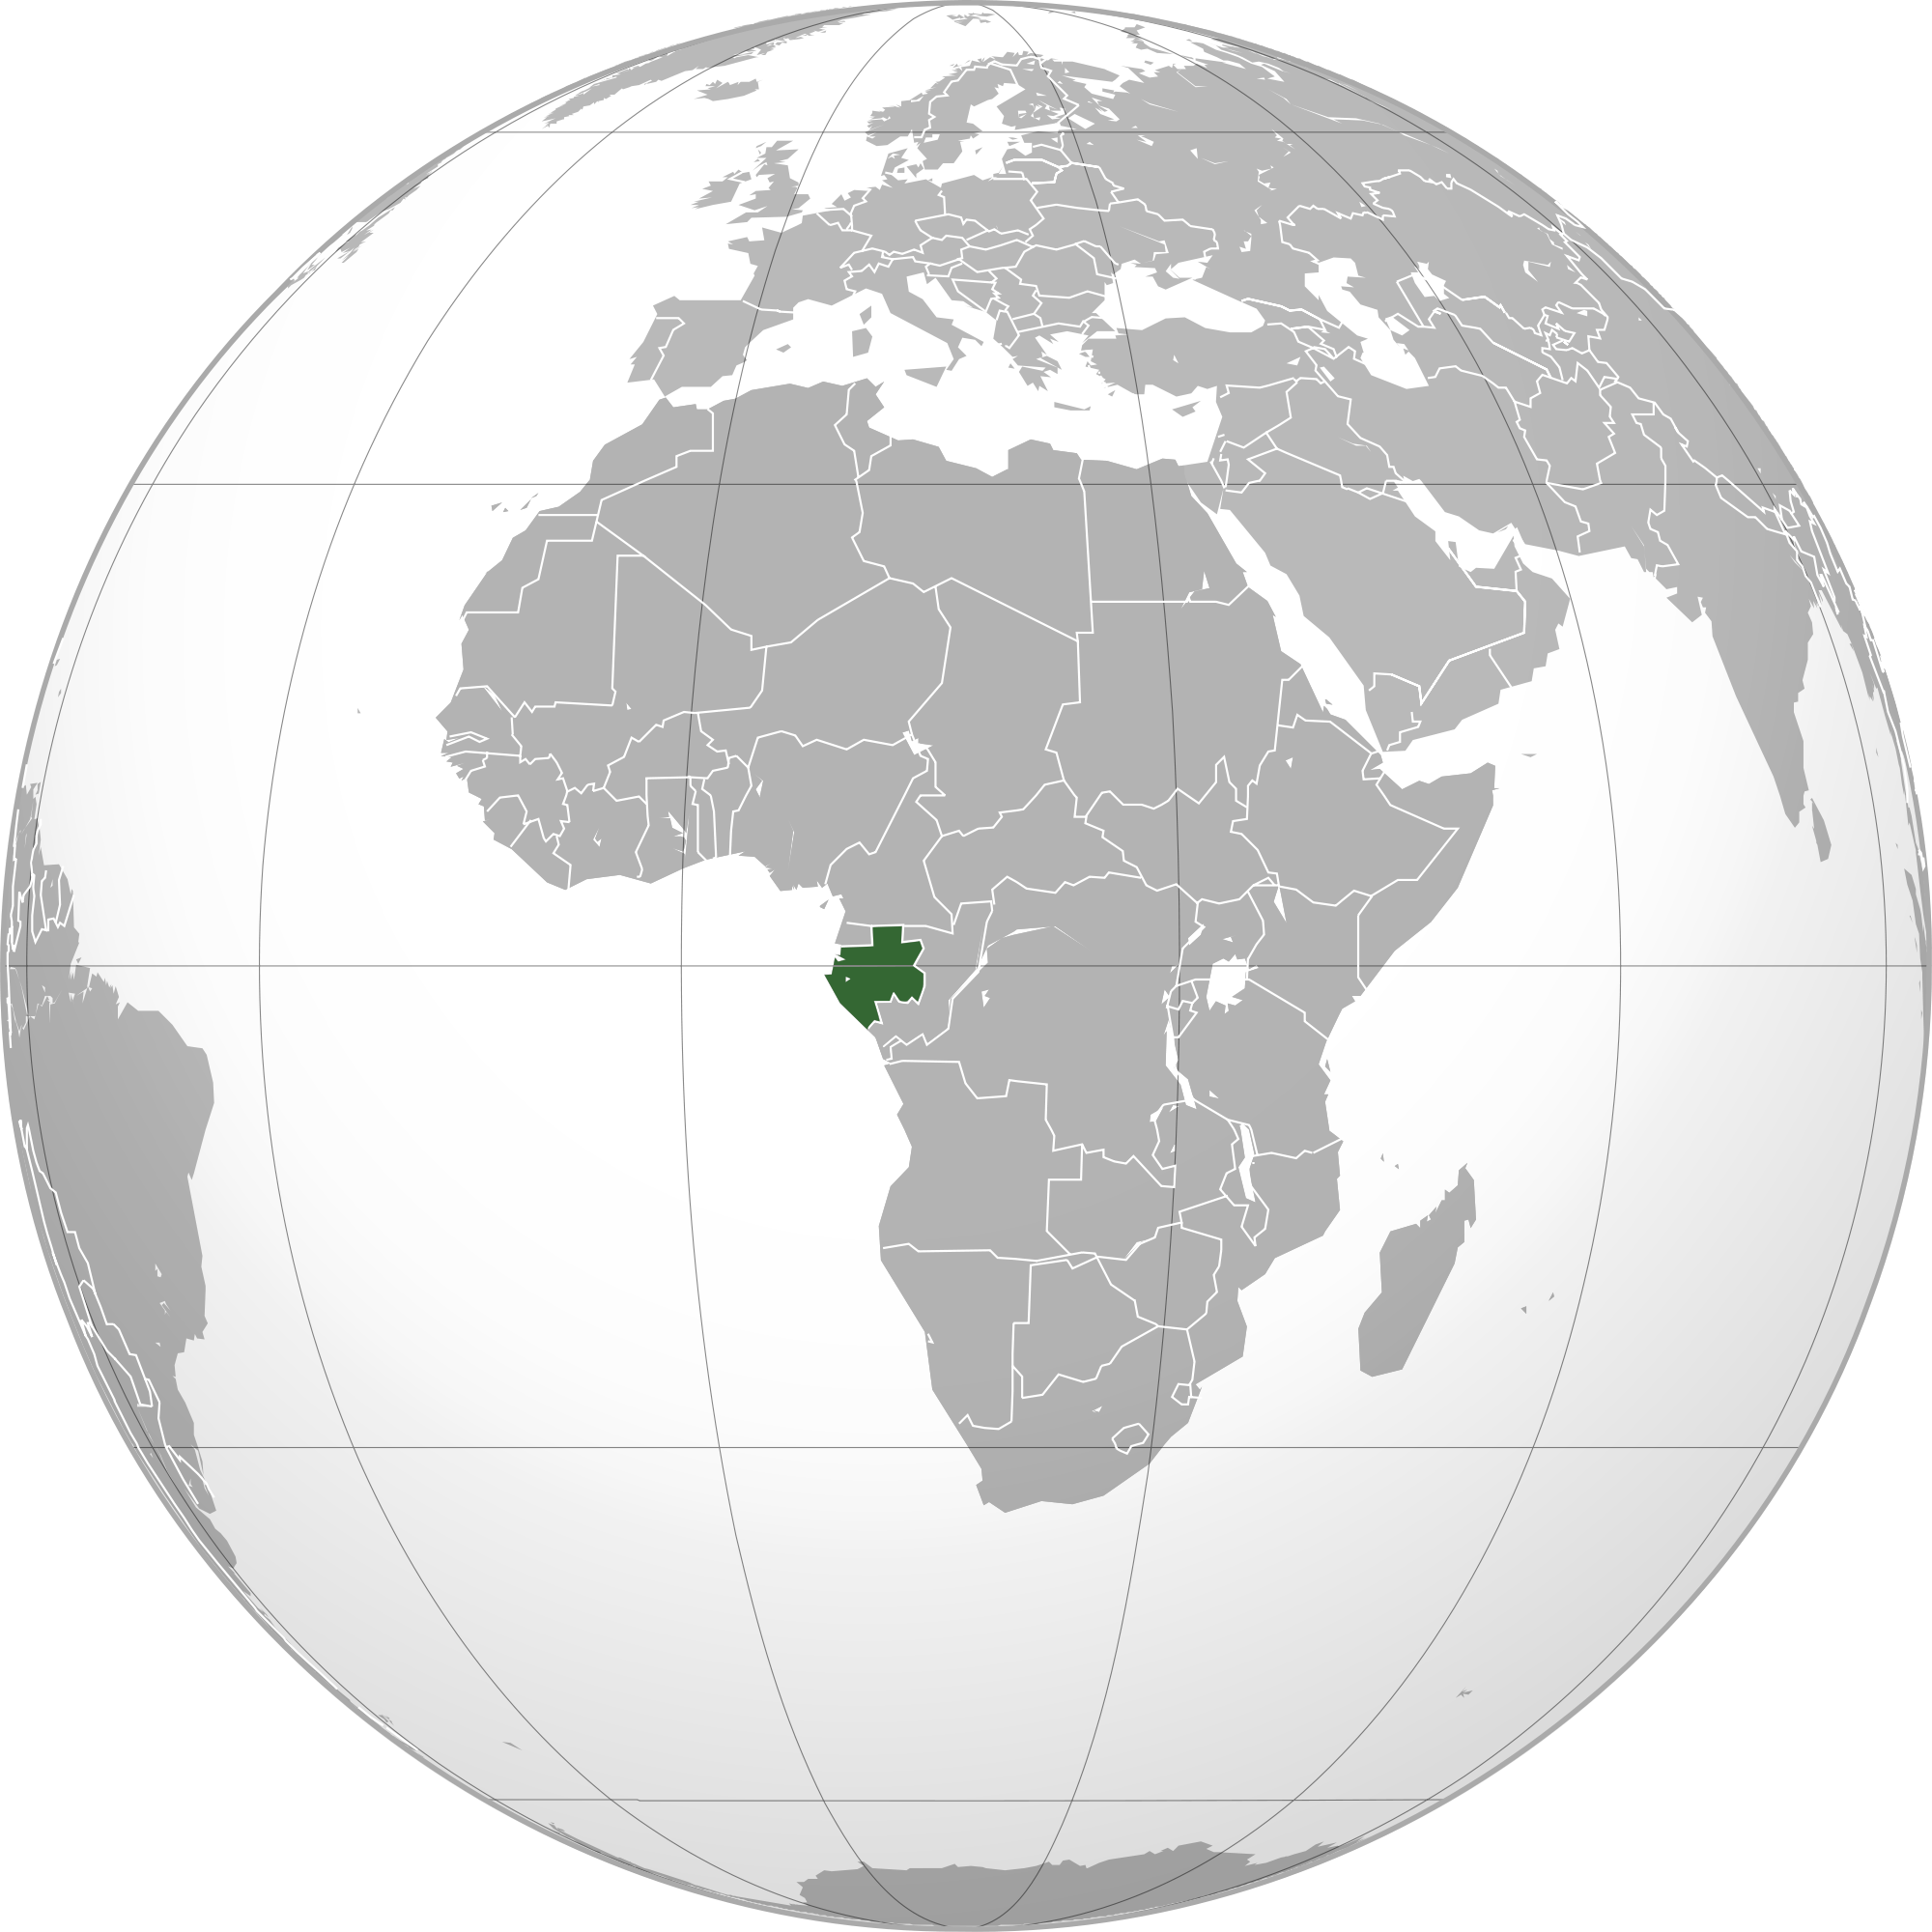 Gabon World Map.Location Of The Gabon In The World Map